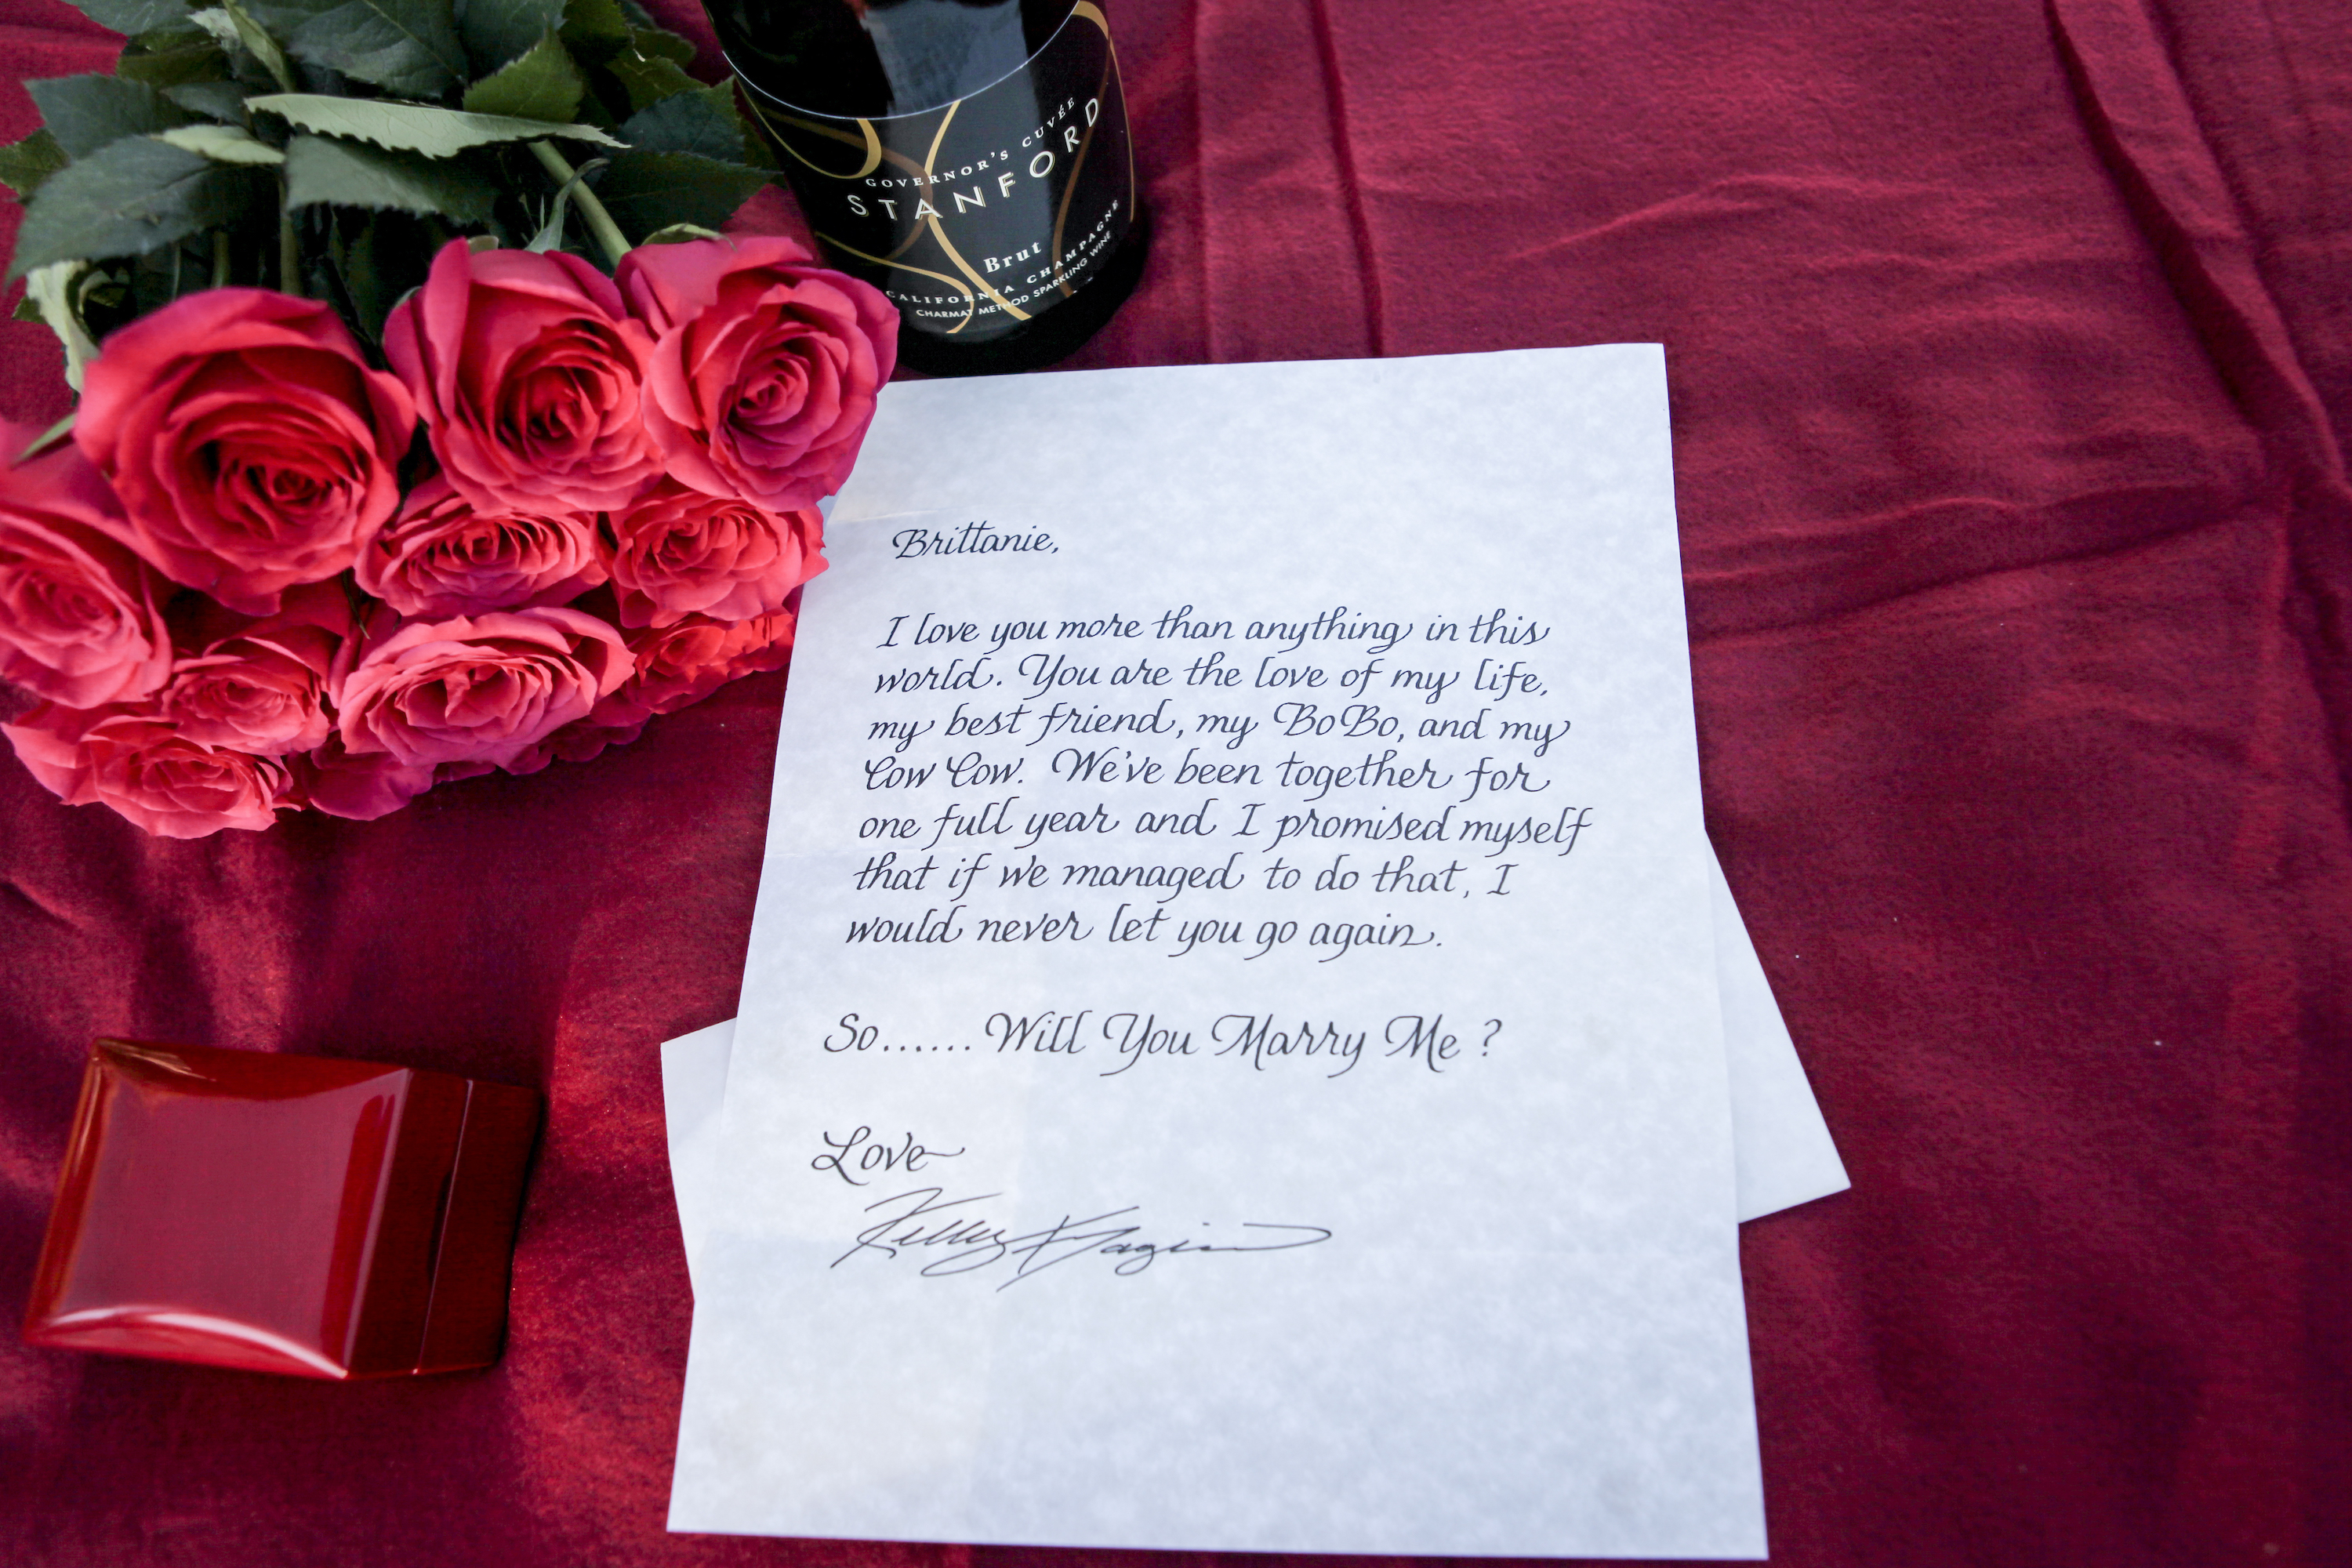 Hawaii Proposal Ideas: The Love Letter